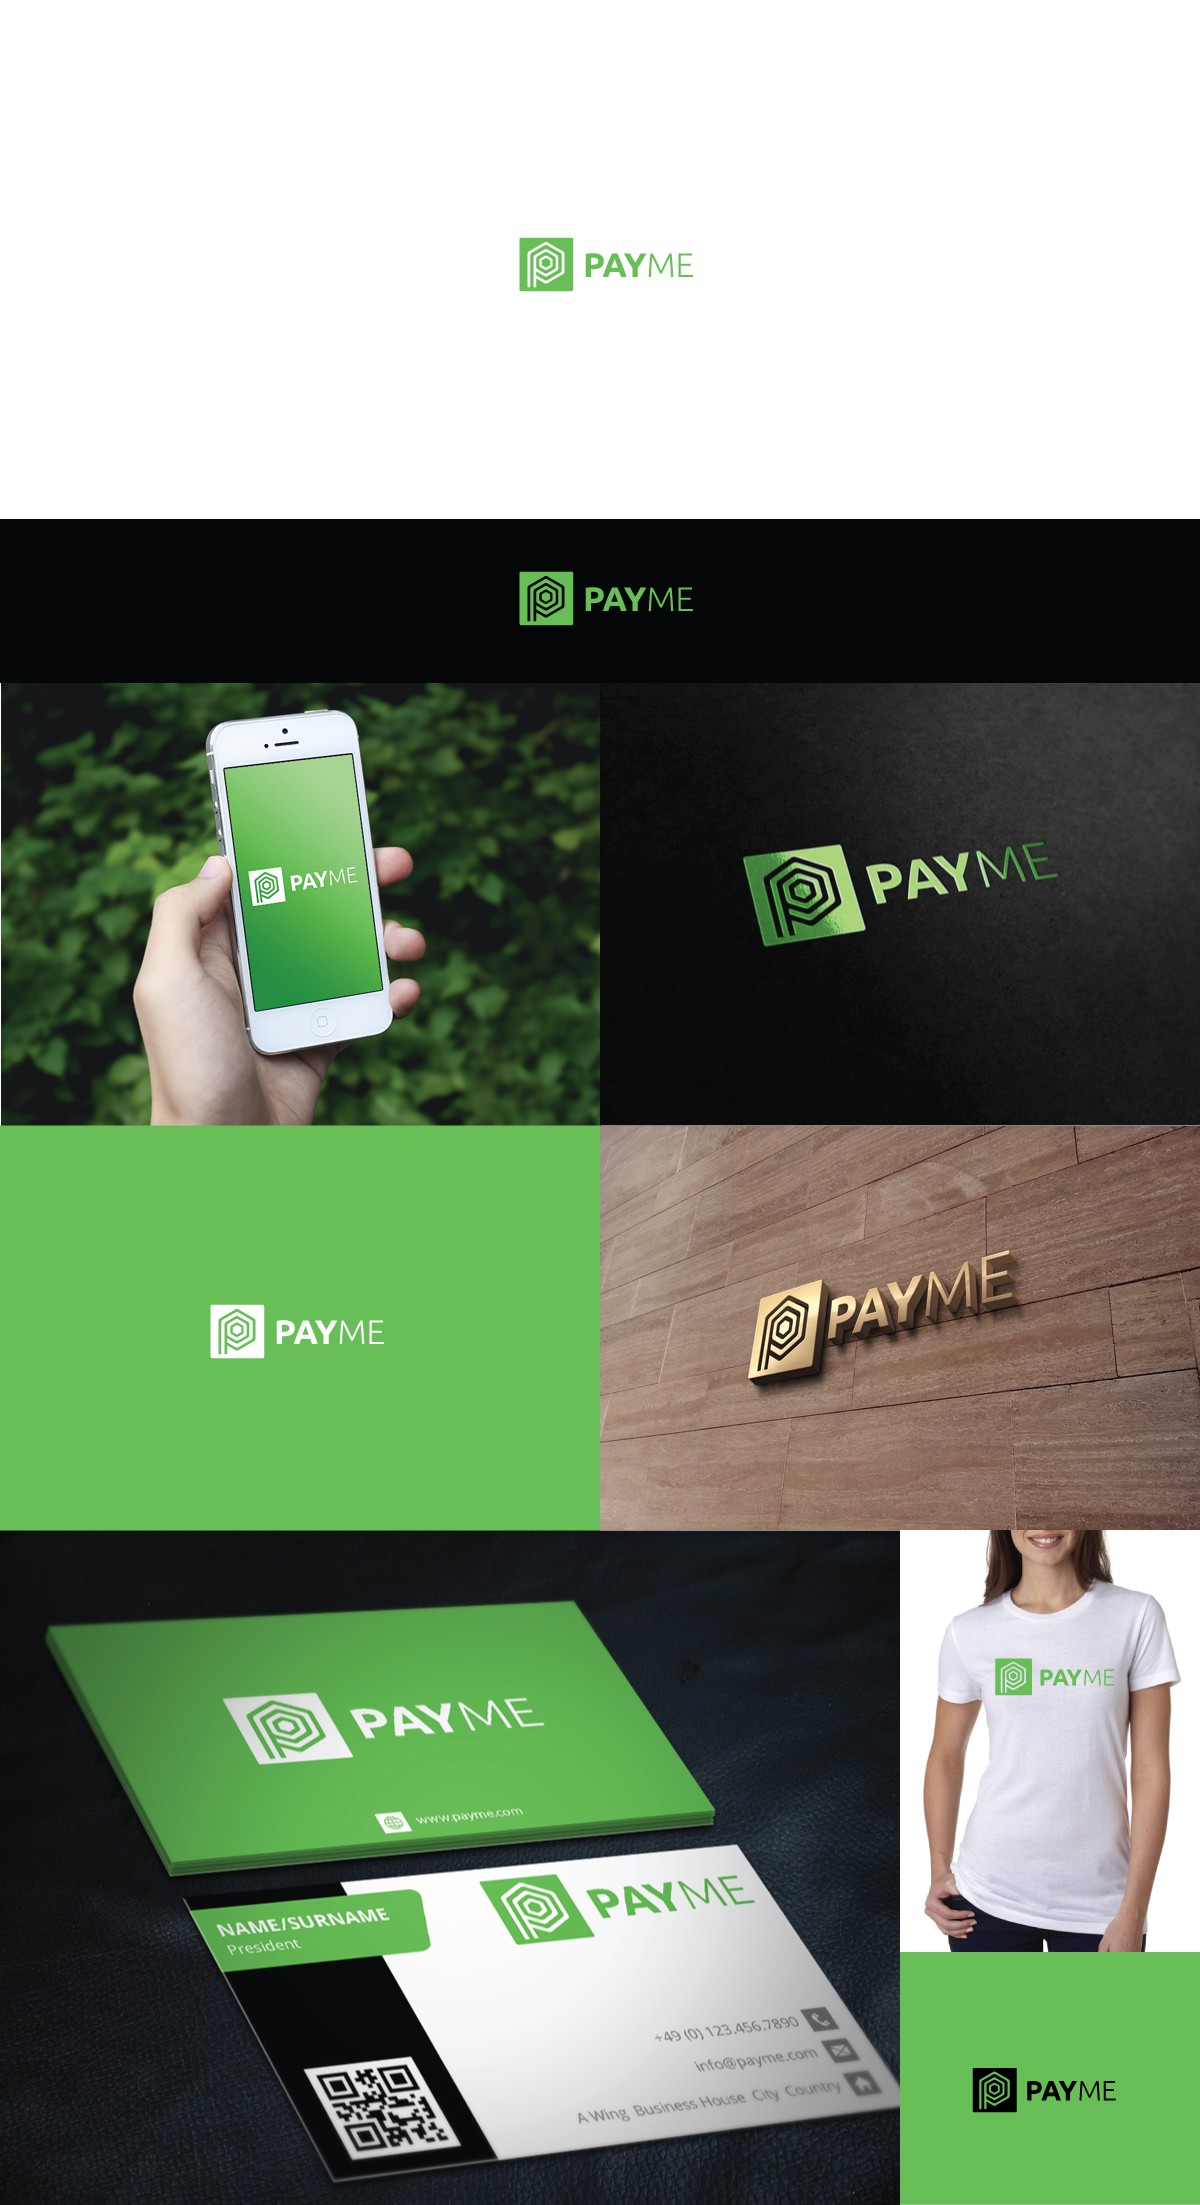 Creating a compelling logo and website for PayMe